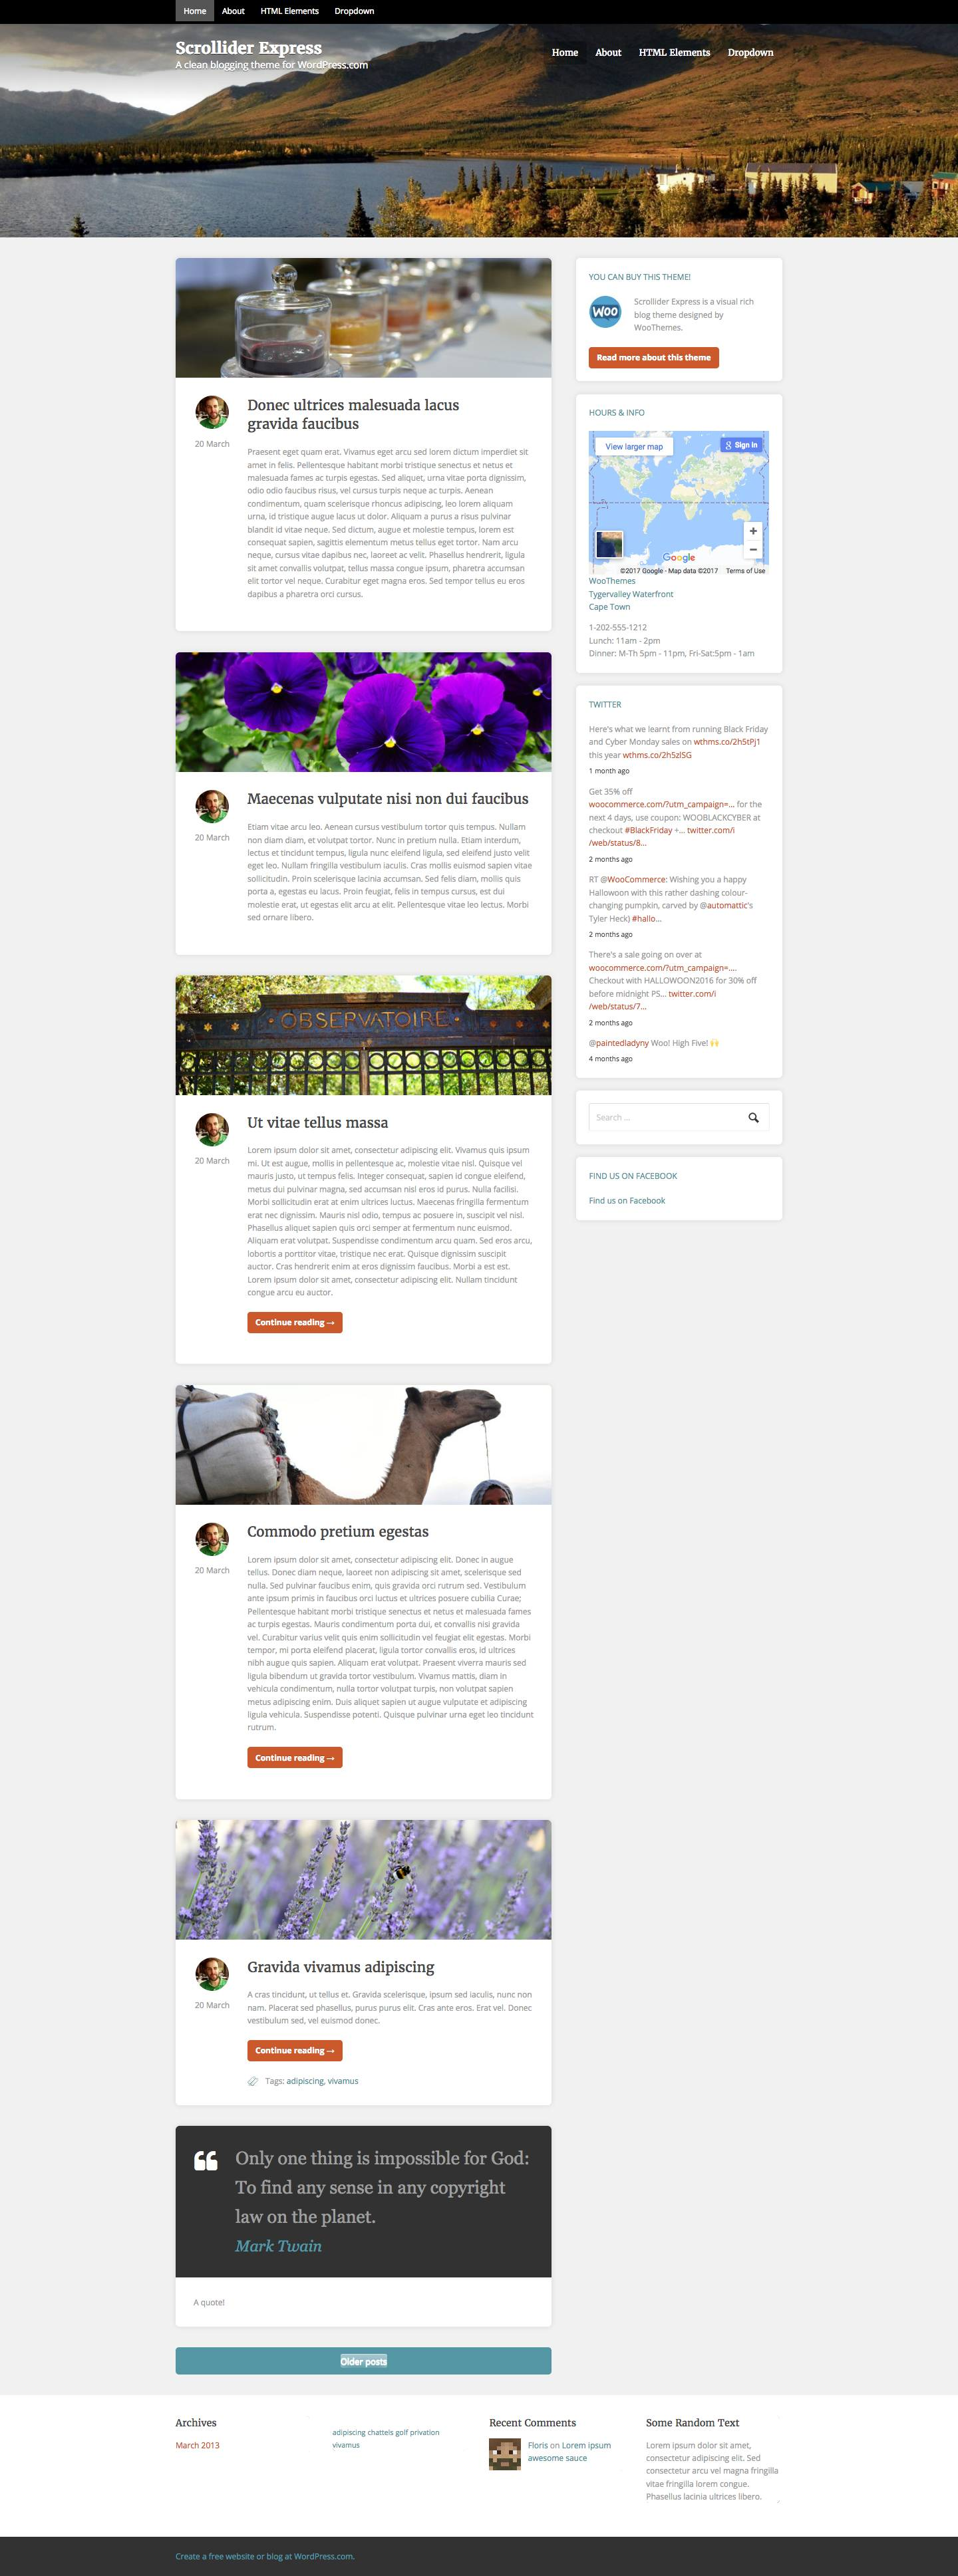 spa lab beauty salon wordpress theme support each piece of art an essay of approximately 250 spa lab beauty salon wordpress theme words